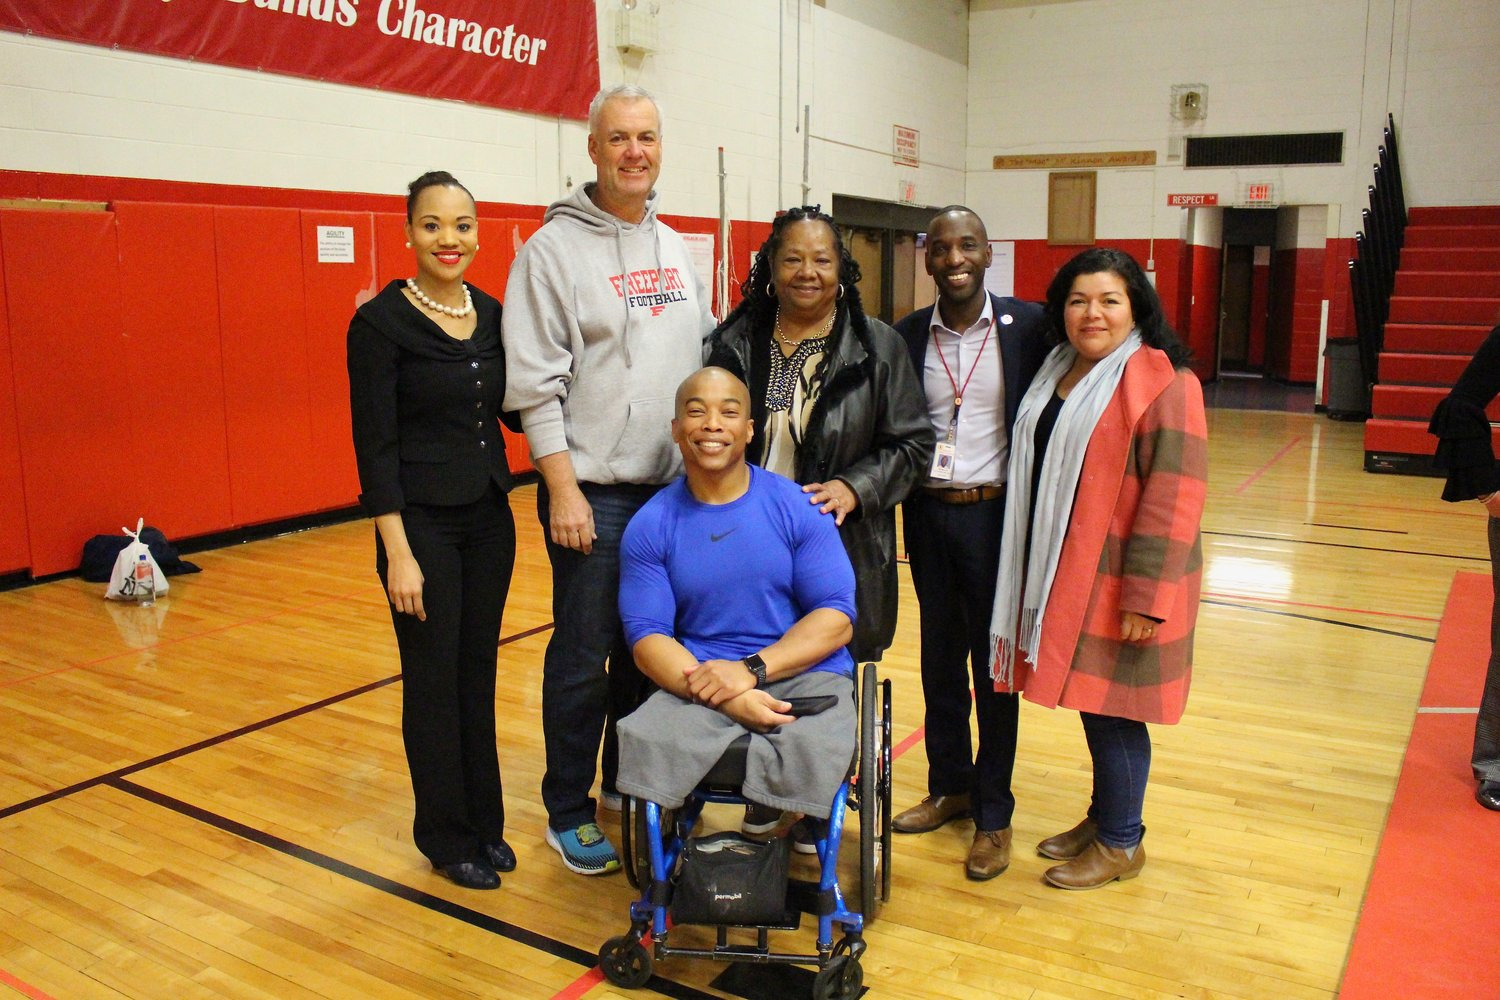 Jordan-Awalom, right, along with Freeport School District Board members pictured with American paralympian and motivational speaker Rohan Murphy.